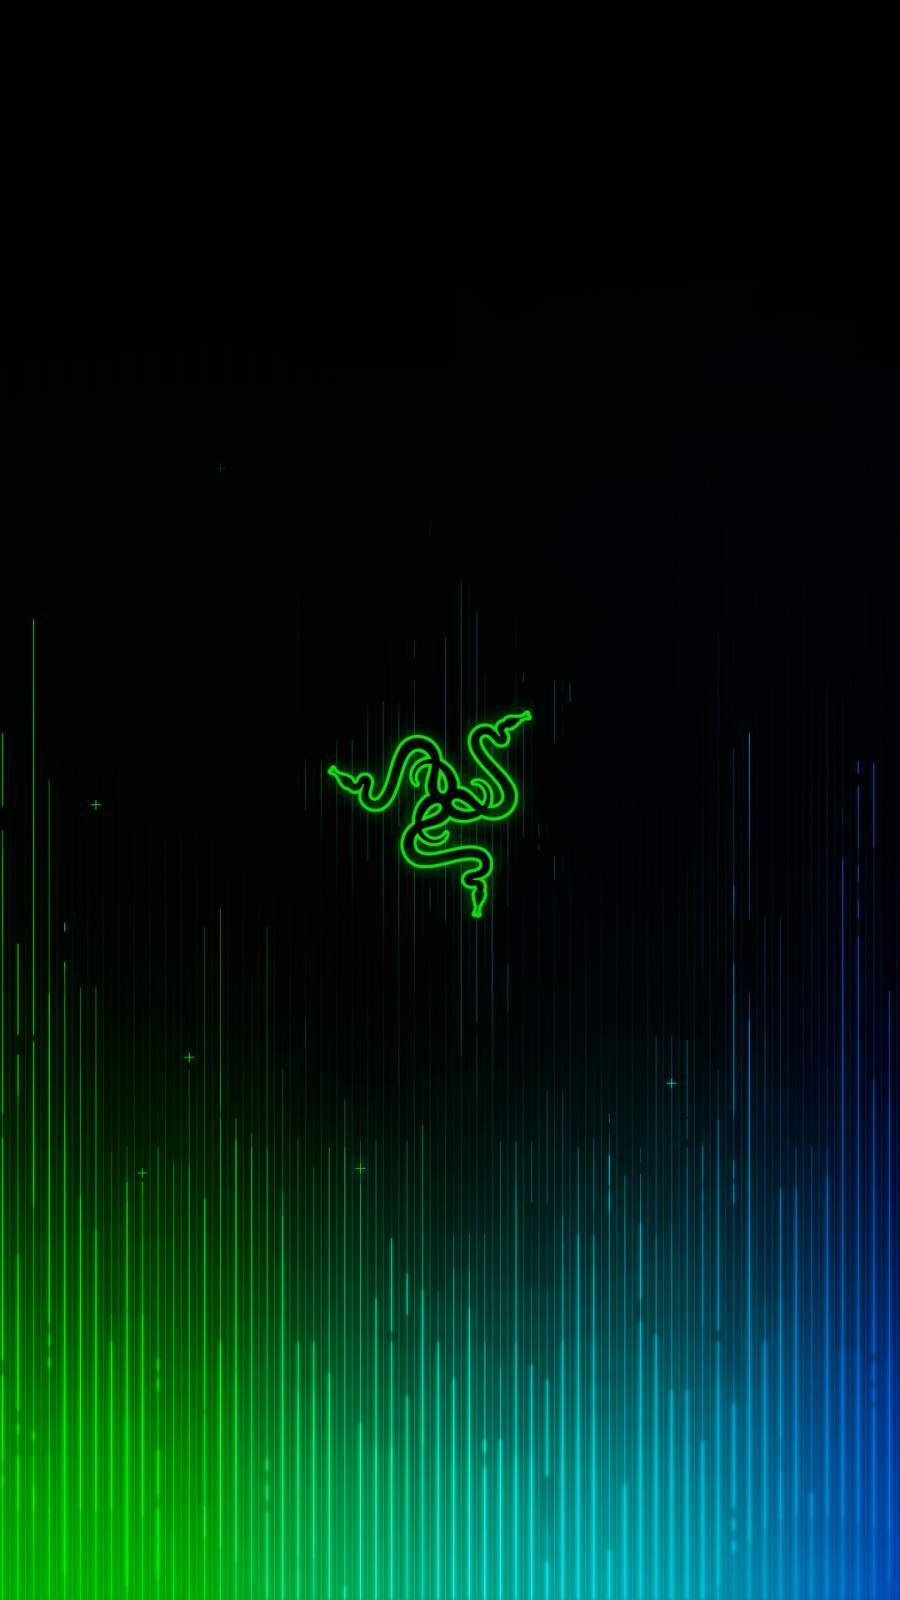 Razer 4k Iphone Wallpaper Iphone Wallpaper Flash Wallpaper Cool Wallpapers For Phones